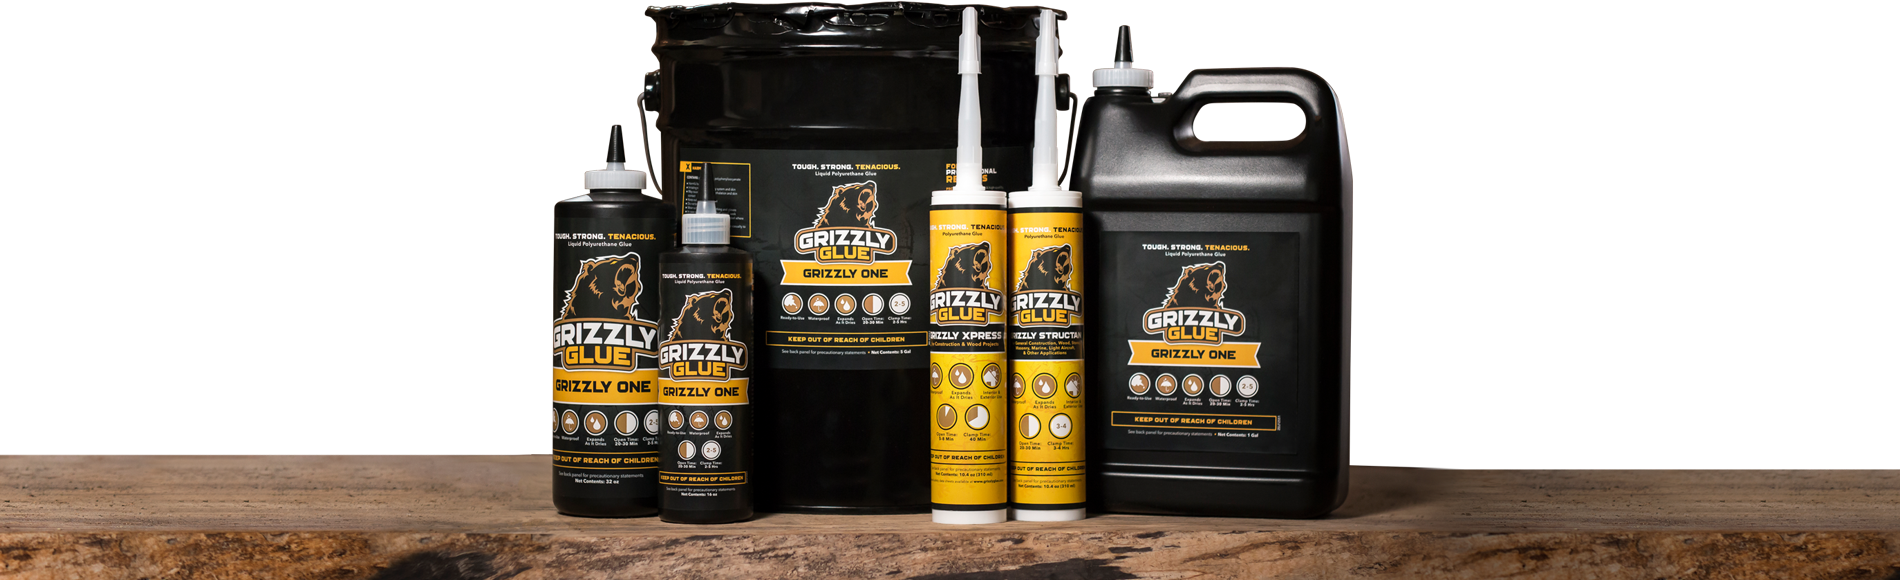 Grizzly Glues